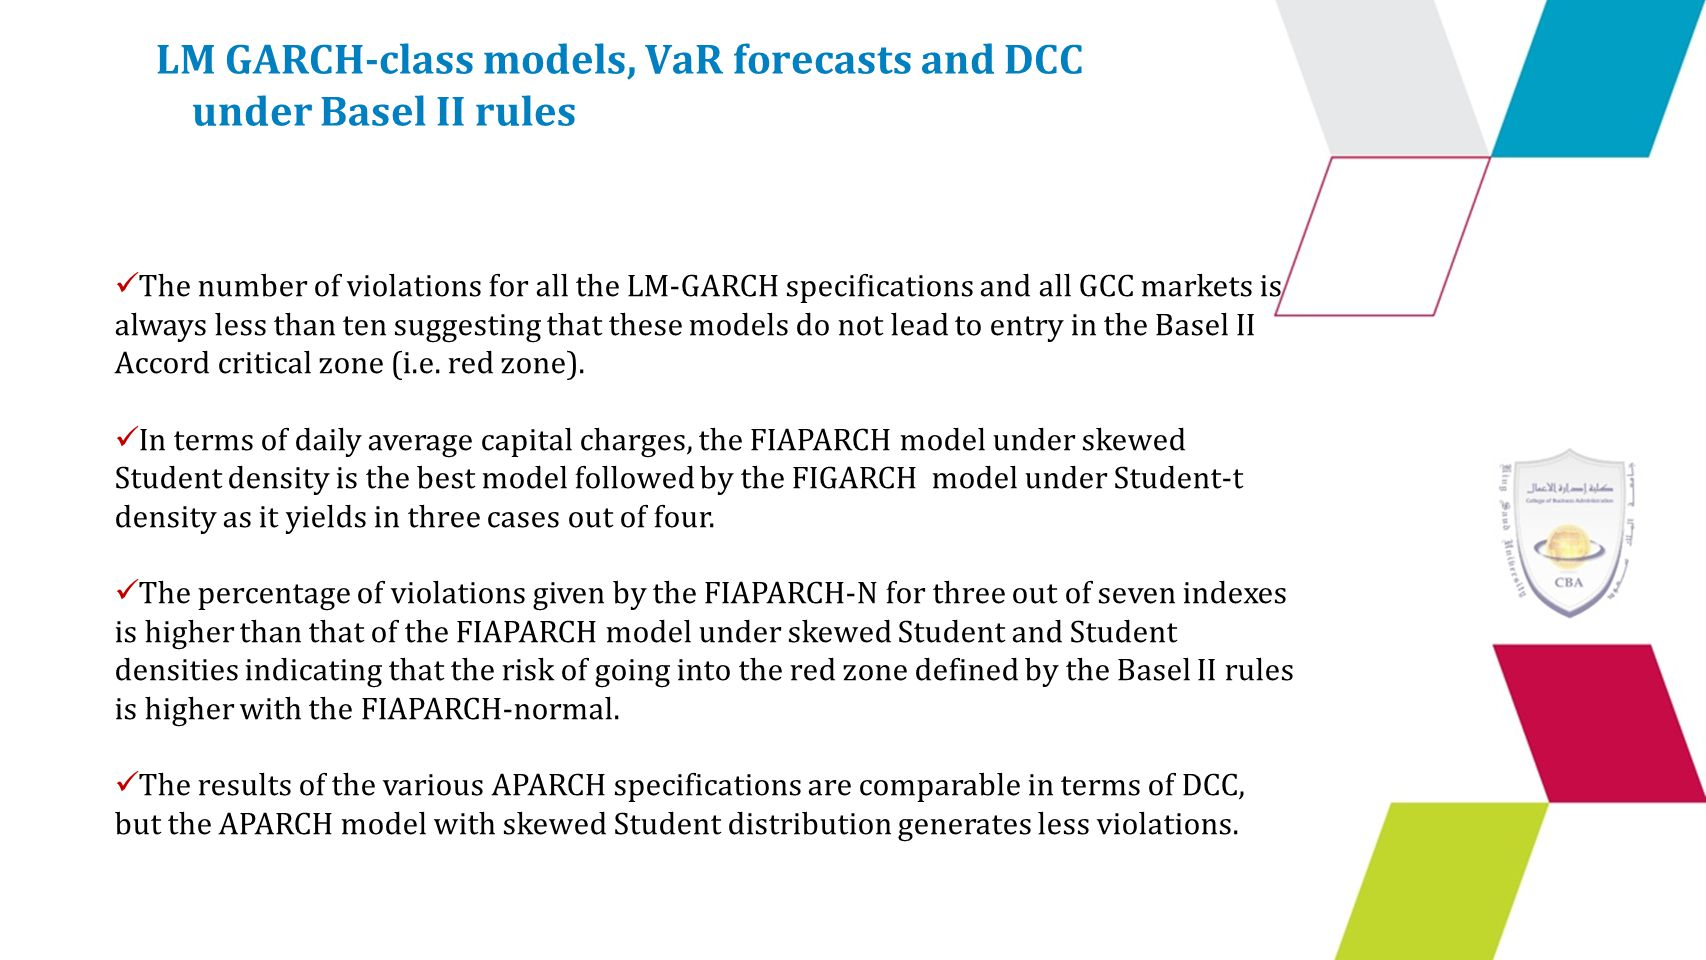 LM GARCH-class models, VaR forecasts and DCC under Basel II rules The number of violations for all the LM-GARCH specifications and all GCC markets is always less than ten suggesting that these models do not lead to entry in the Basel II Accord critical zone (i.e.